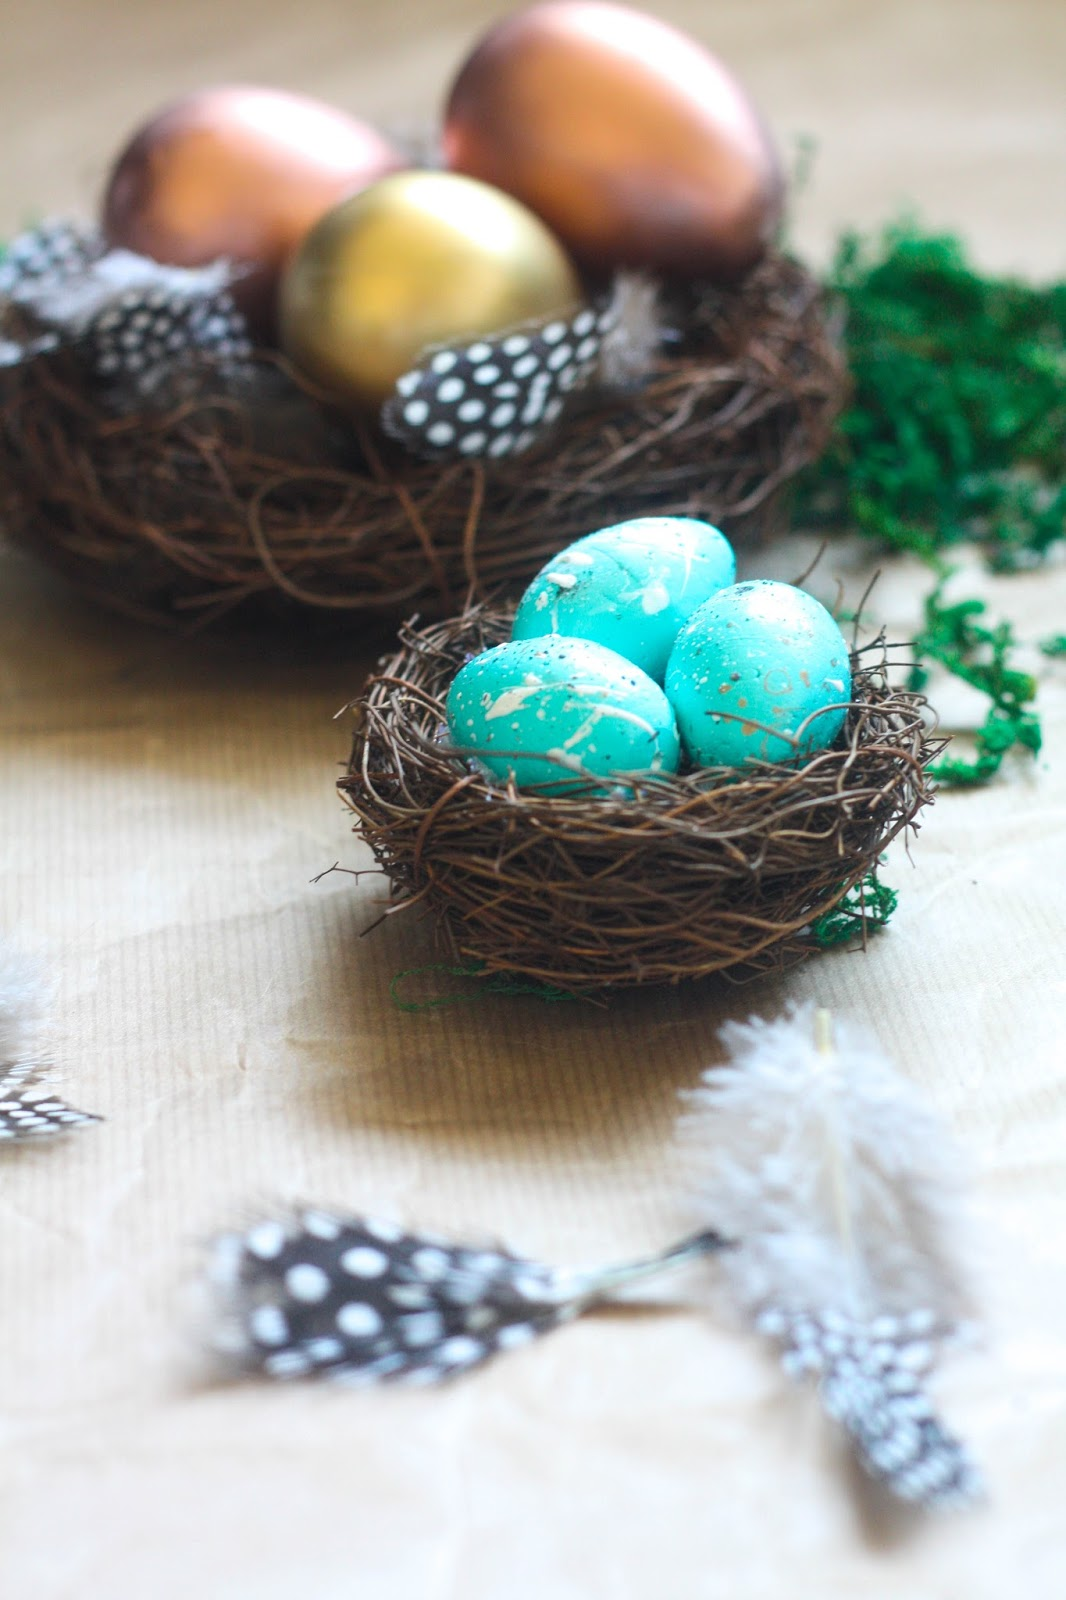 9 Czech Easter traditions that surely aren't real (but they totally are!)